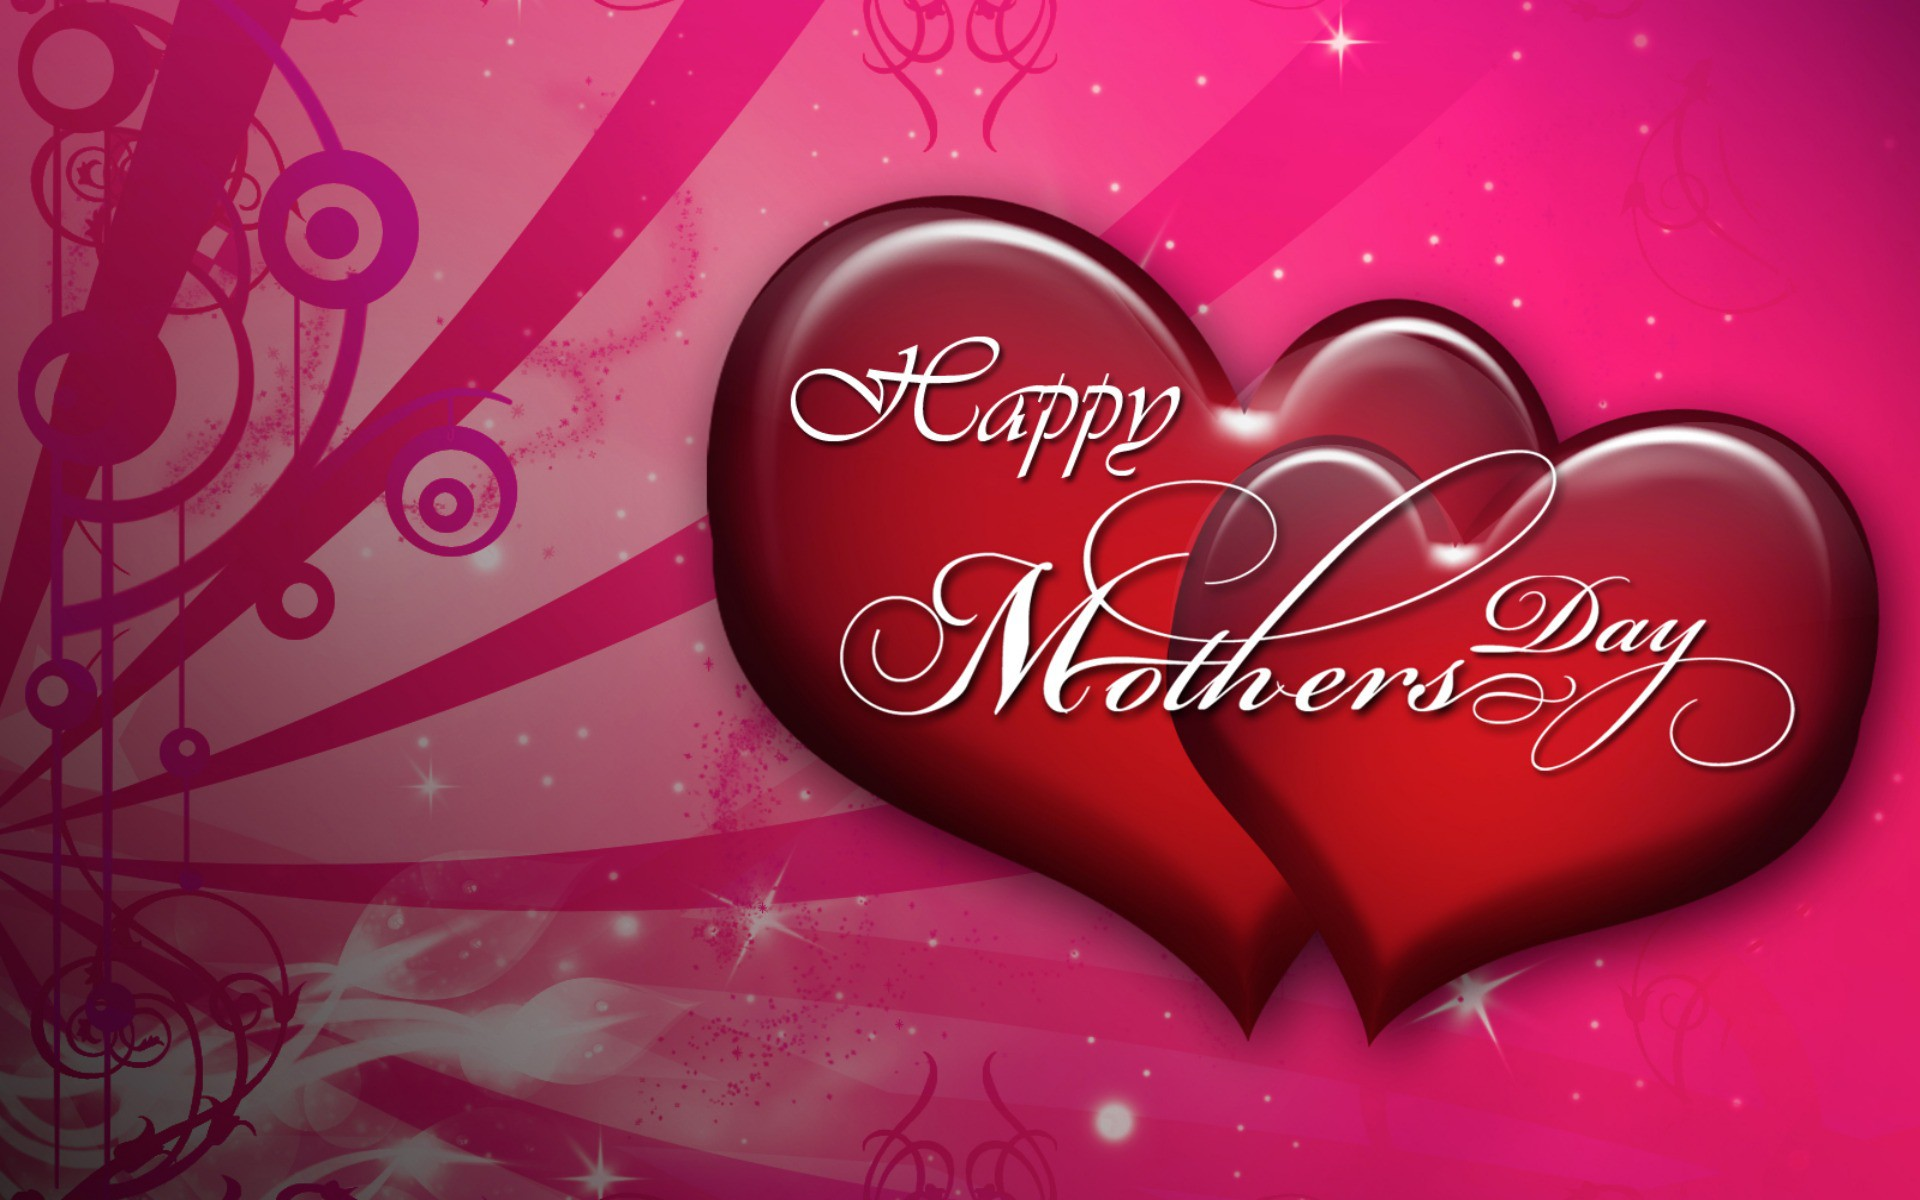 Mothers day love wallpapers